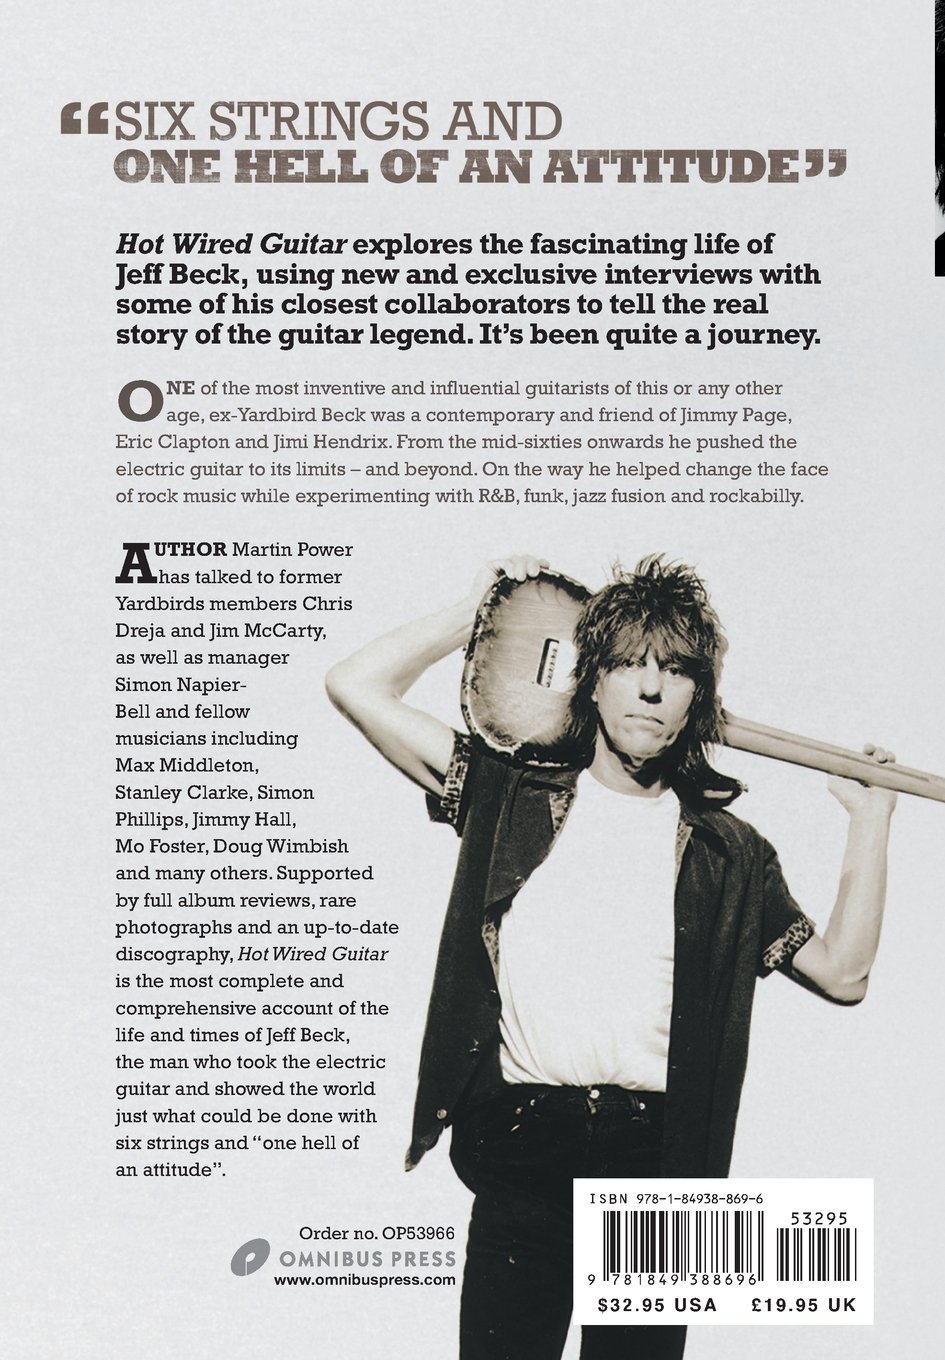 Hot Wired Guitar: The Life of Jeff Beck: Martin Power: 9781849388696 ...